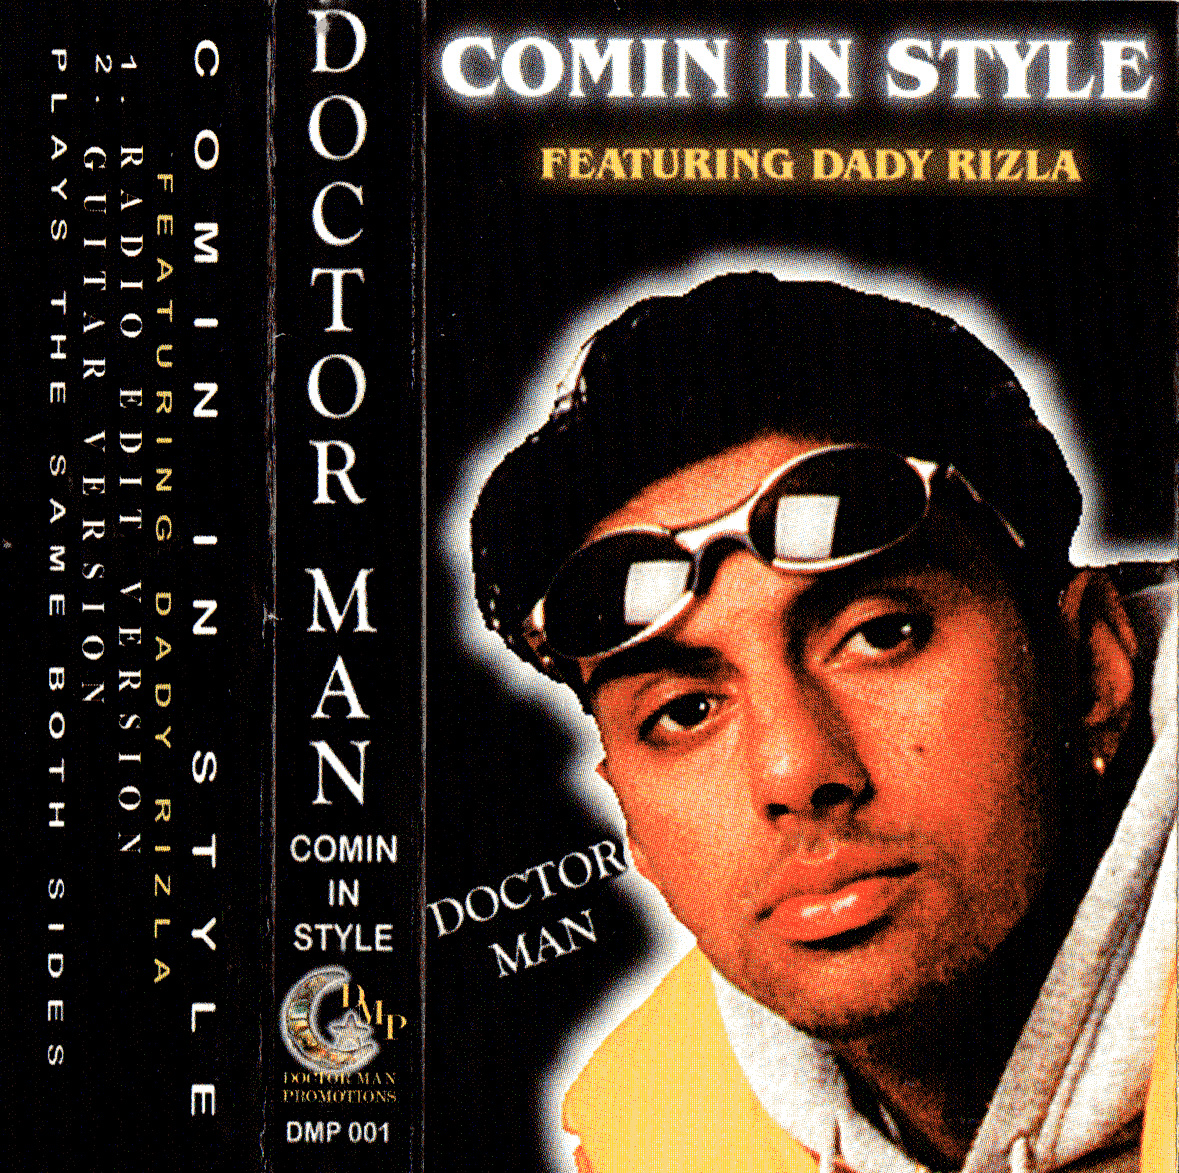 Doctor Man - Comin In Style